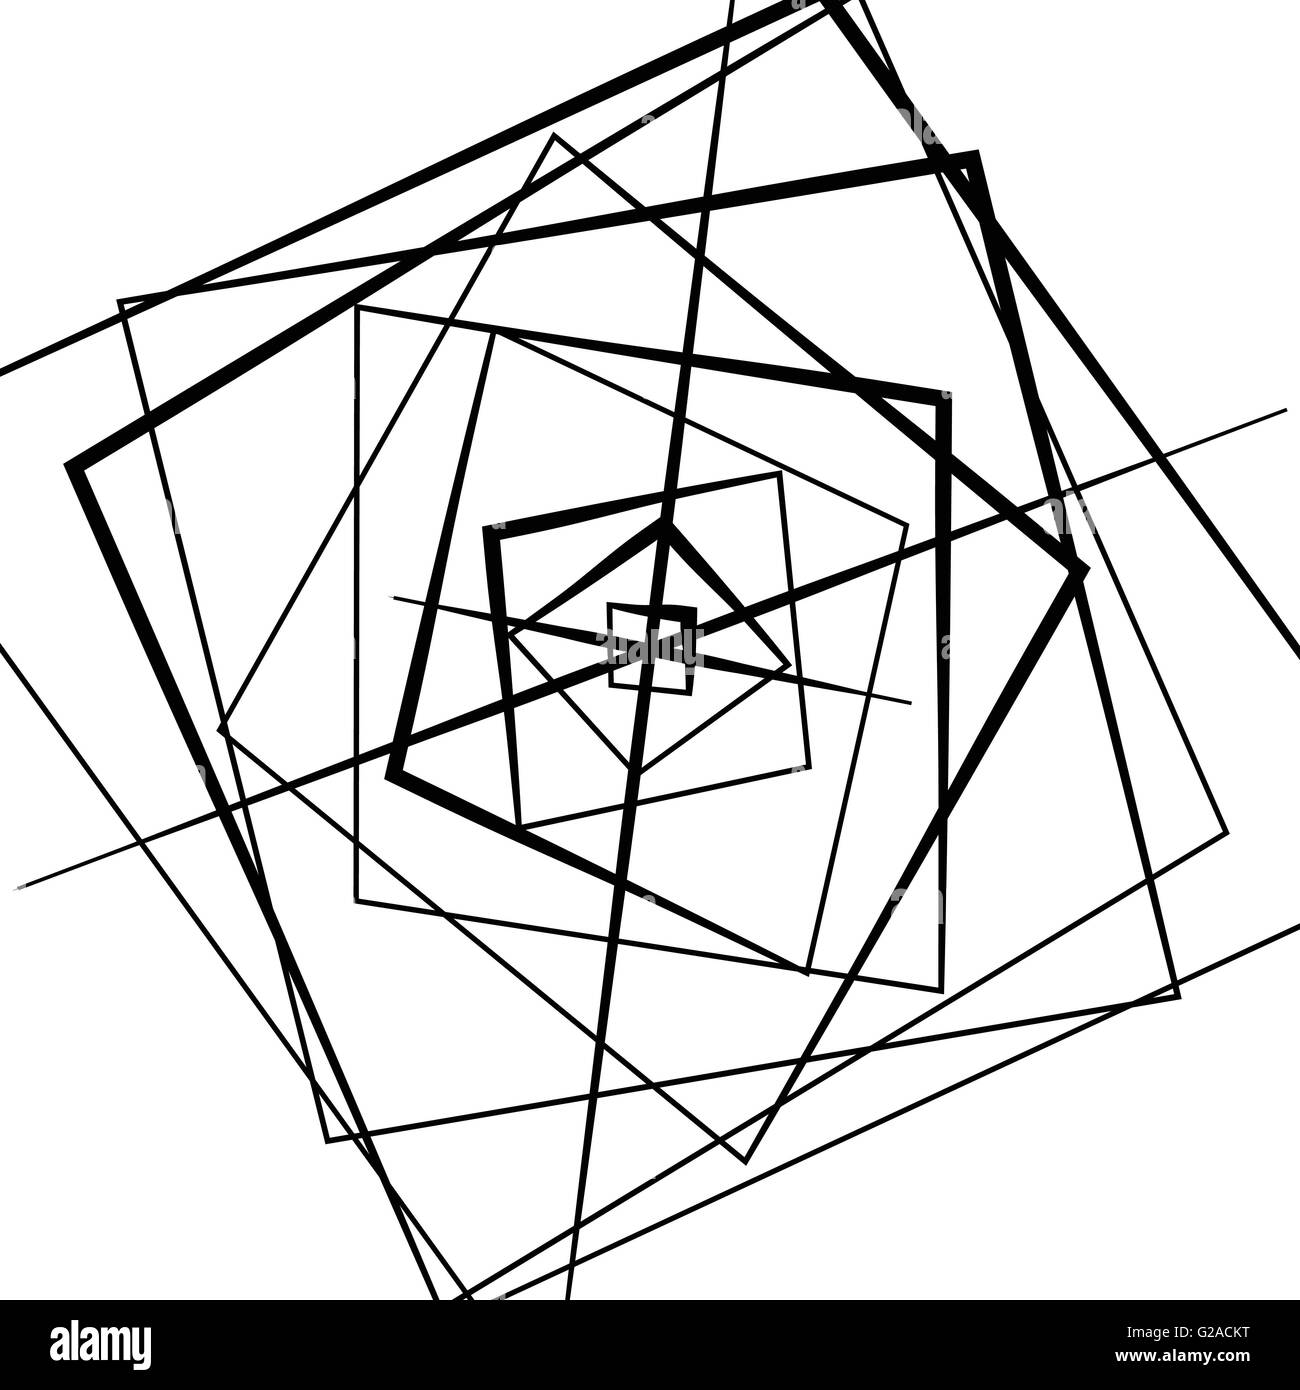 Line Art Geometric : Abstract geometric line drawings imgkid the